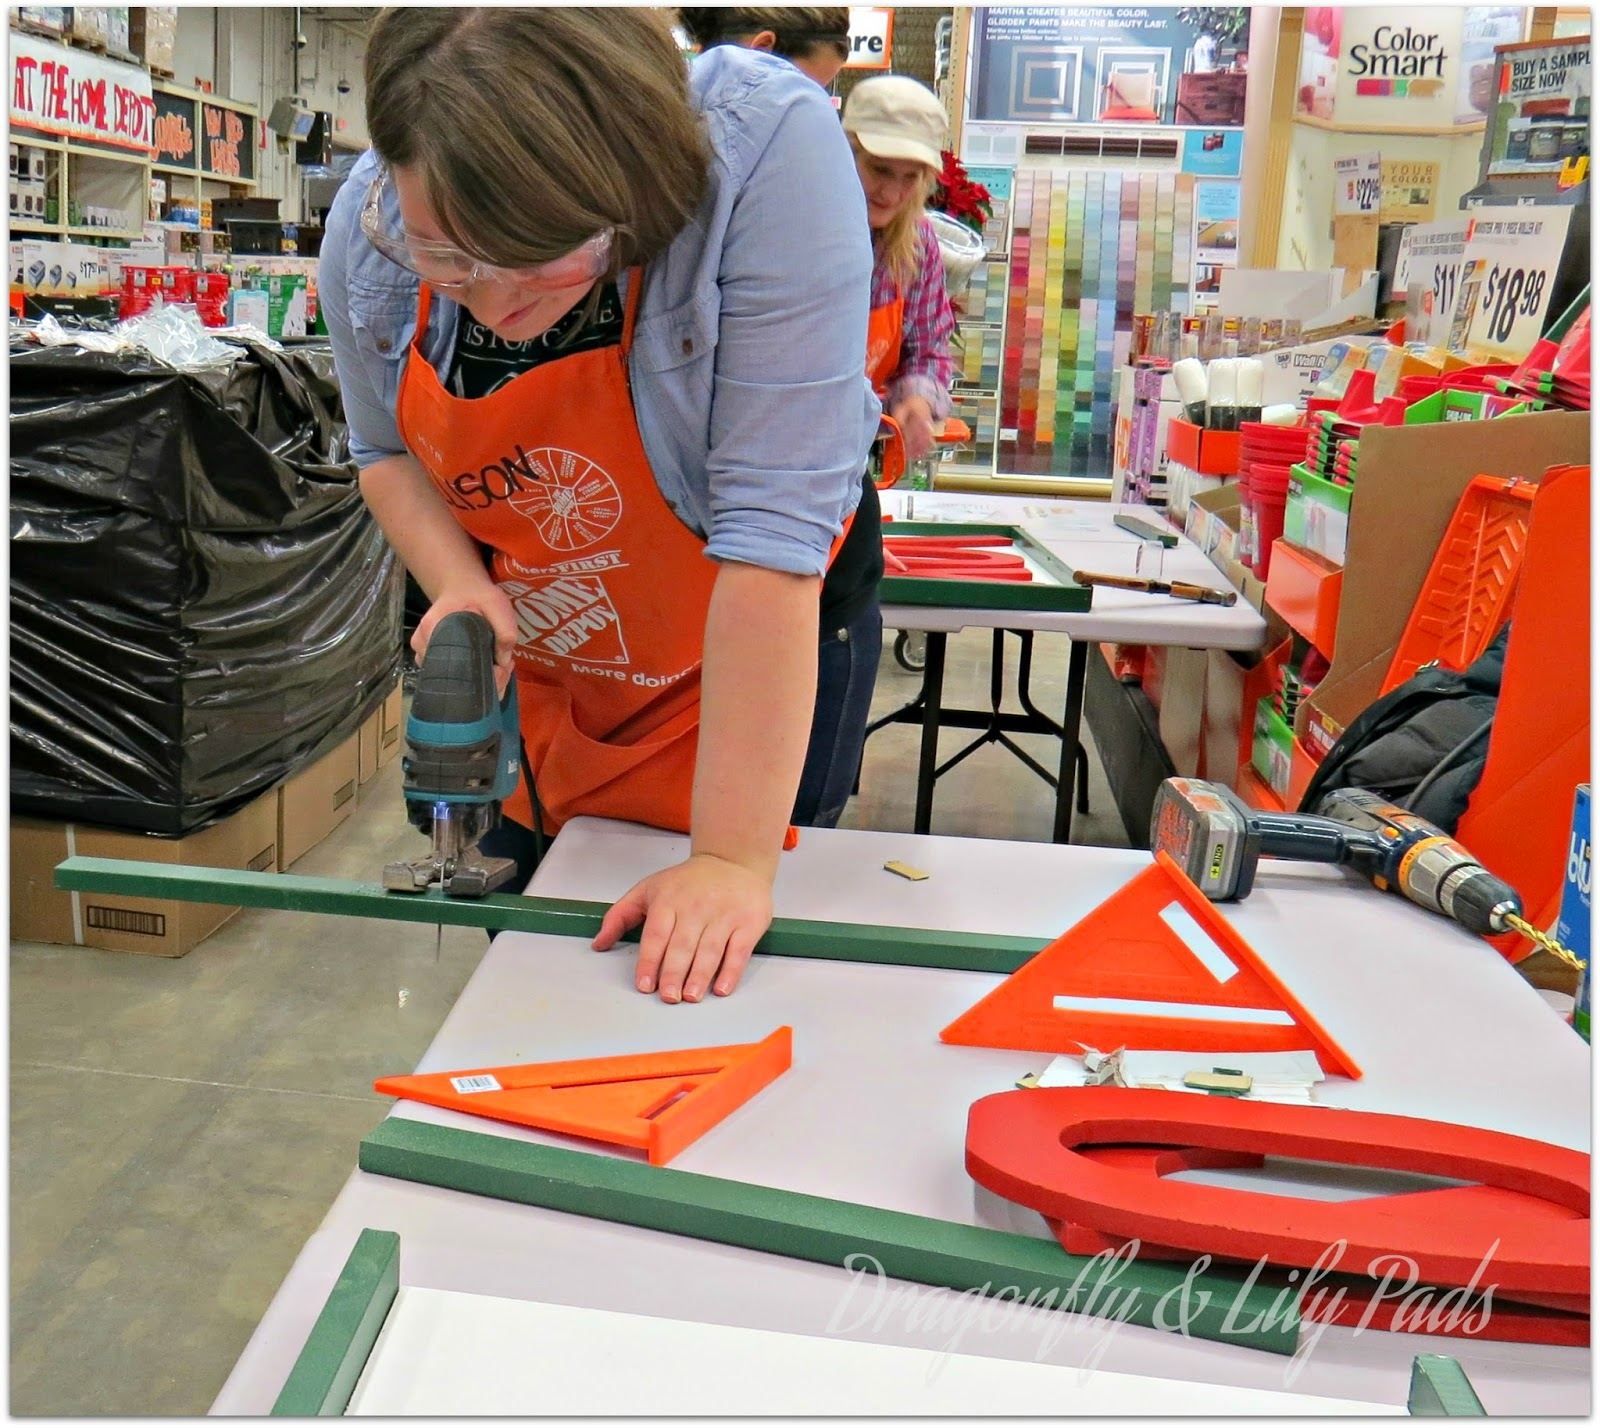 Dragonfly Lily Pads Home Depot Do It Herself Workshop 1